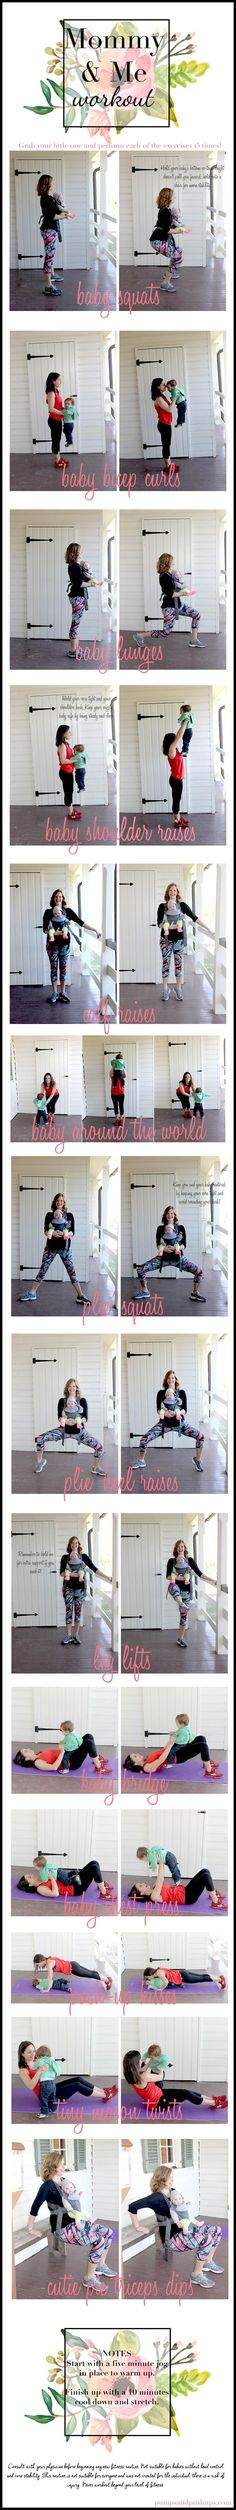 Apr 2020 - Post baby work outs. Safe work outs for after baby arrival! See more ideas about Body after baby, After baby and Baby workout.